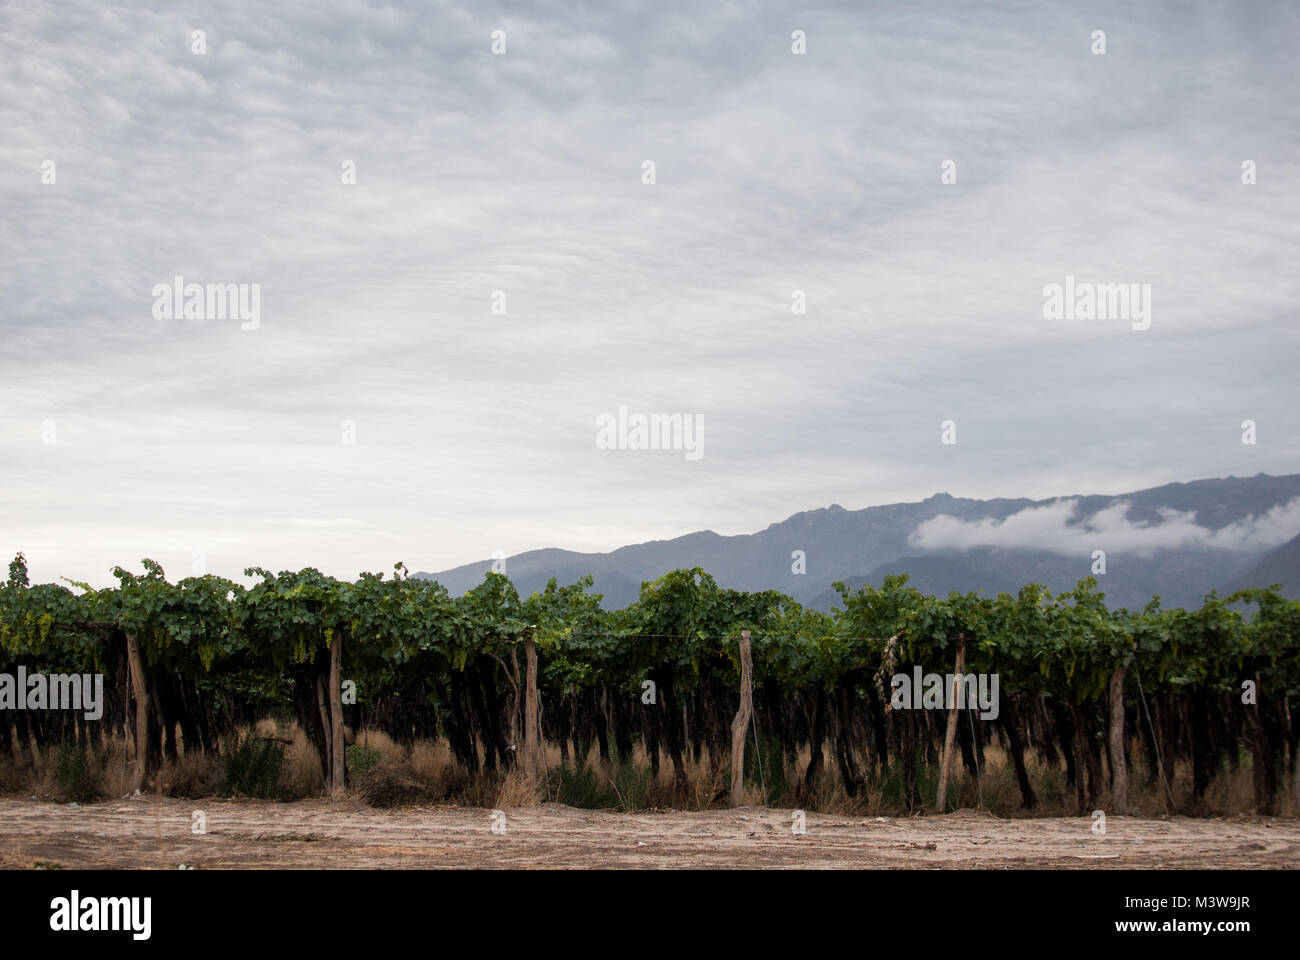 A rustic vineyard full of grapevines below a cloudy sky in Mendoza, Argentina - Stock Image